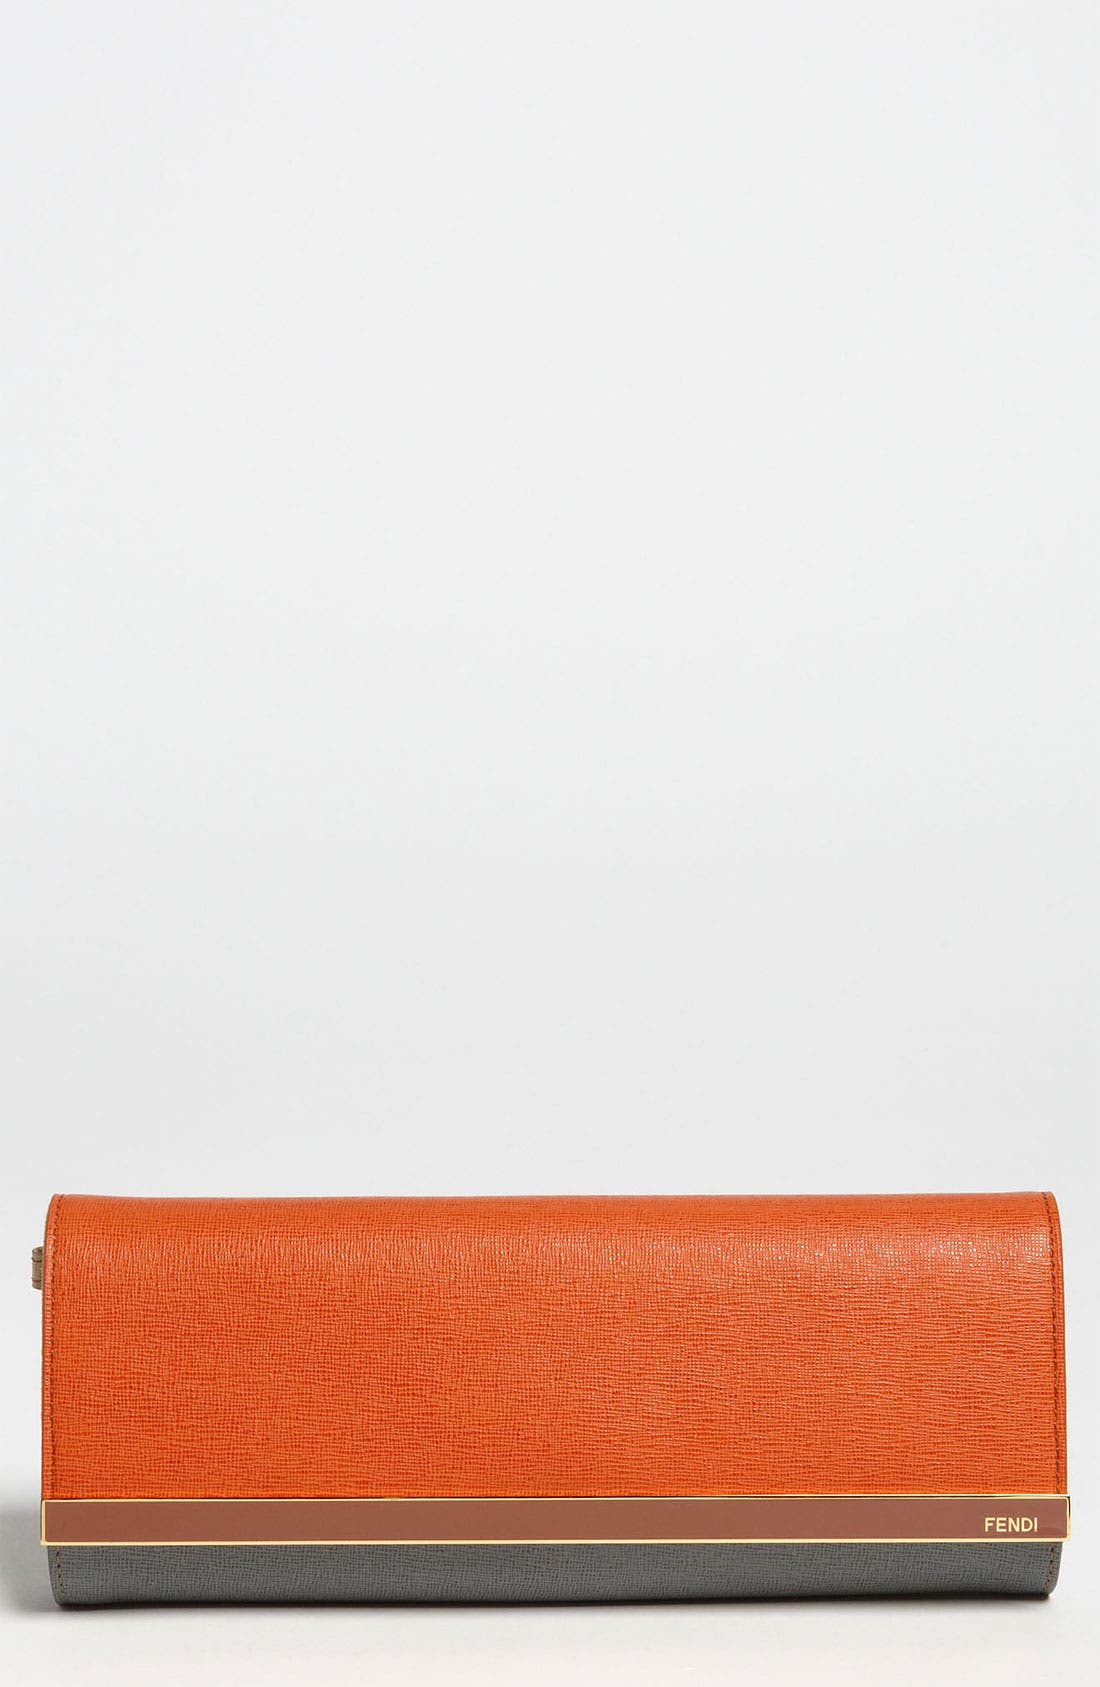 Main Image - Fendi 'Rush' Clutch